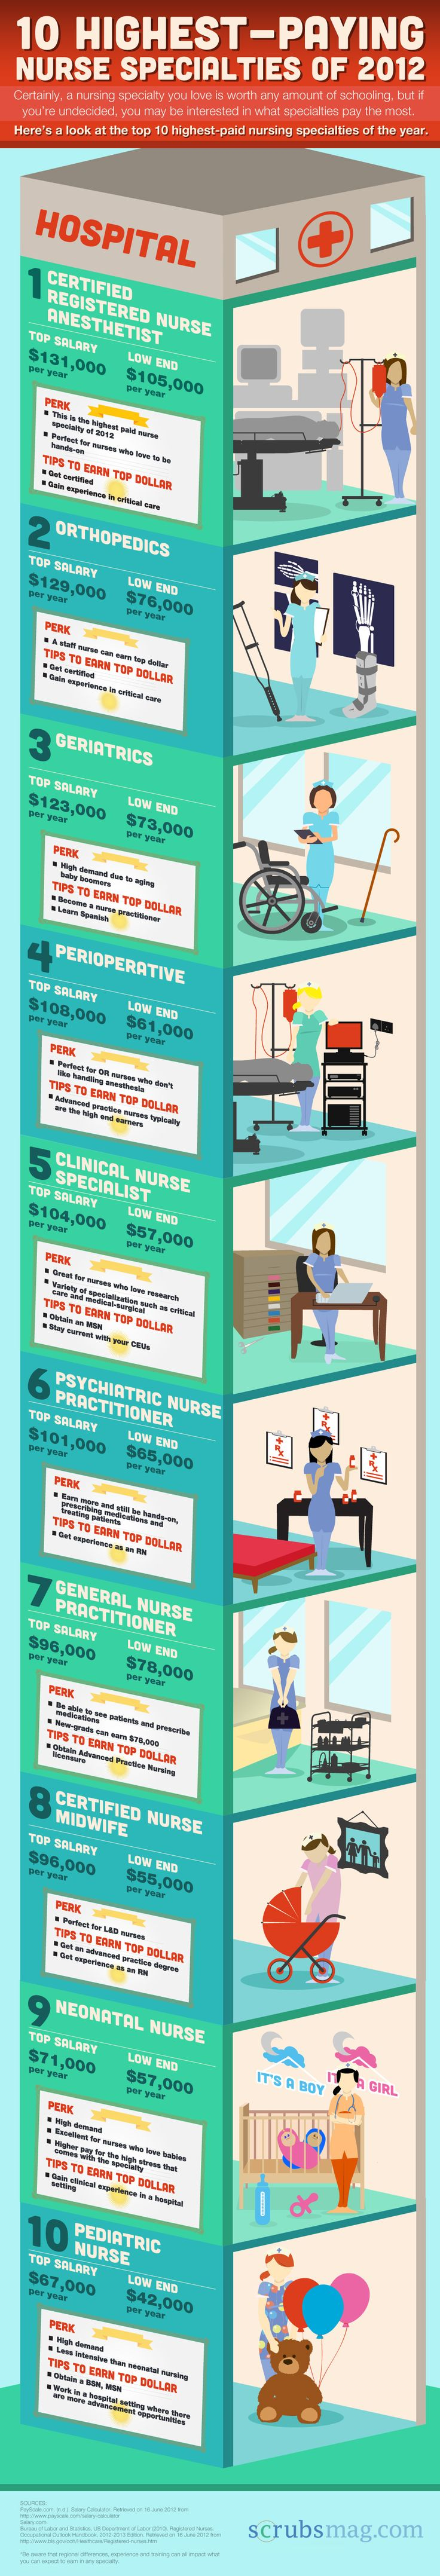 Highest Paying Nurse Specialties of 2012